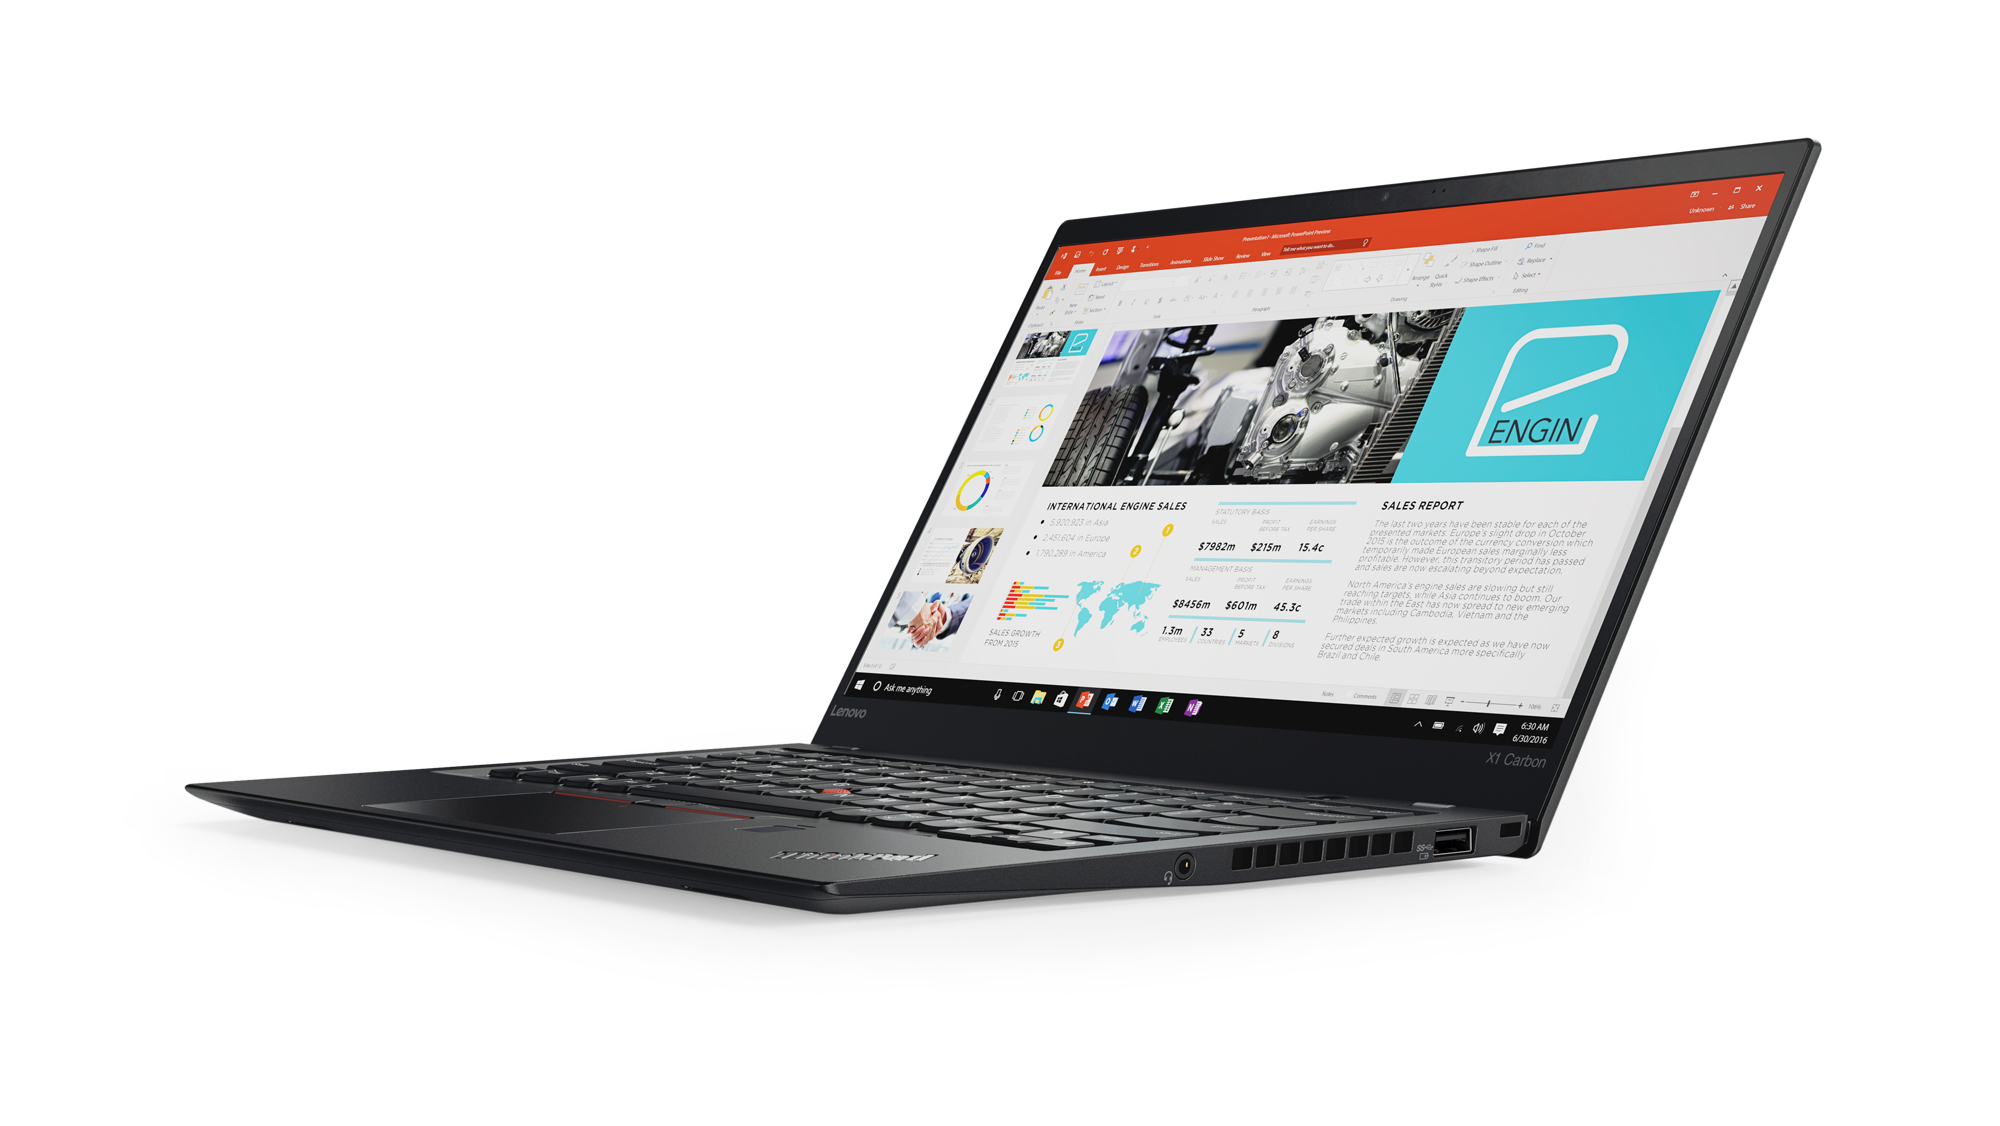 Lenovo ThinkPad X1 Carbon 2.70GHz i7-7500U 14